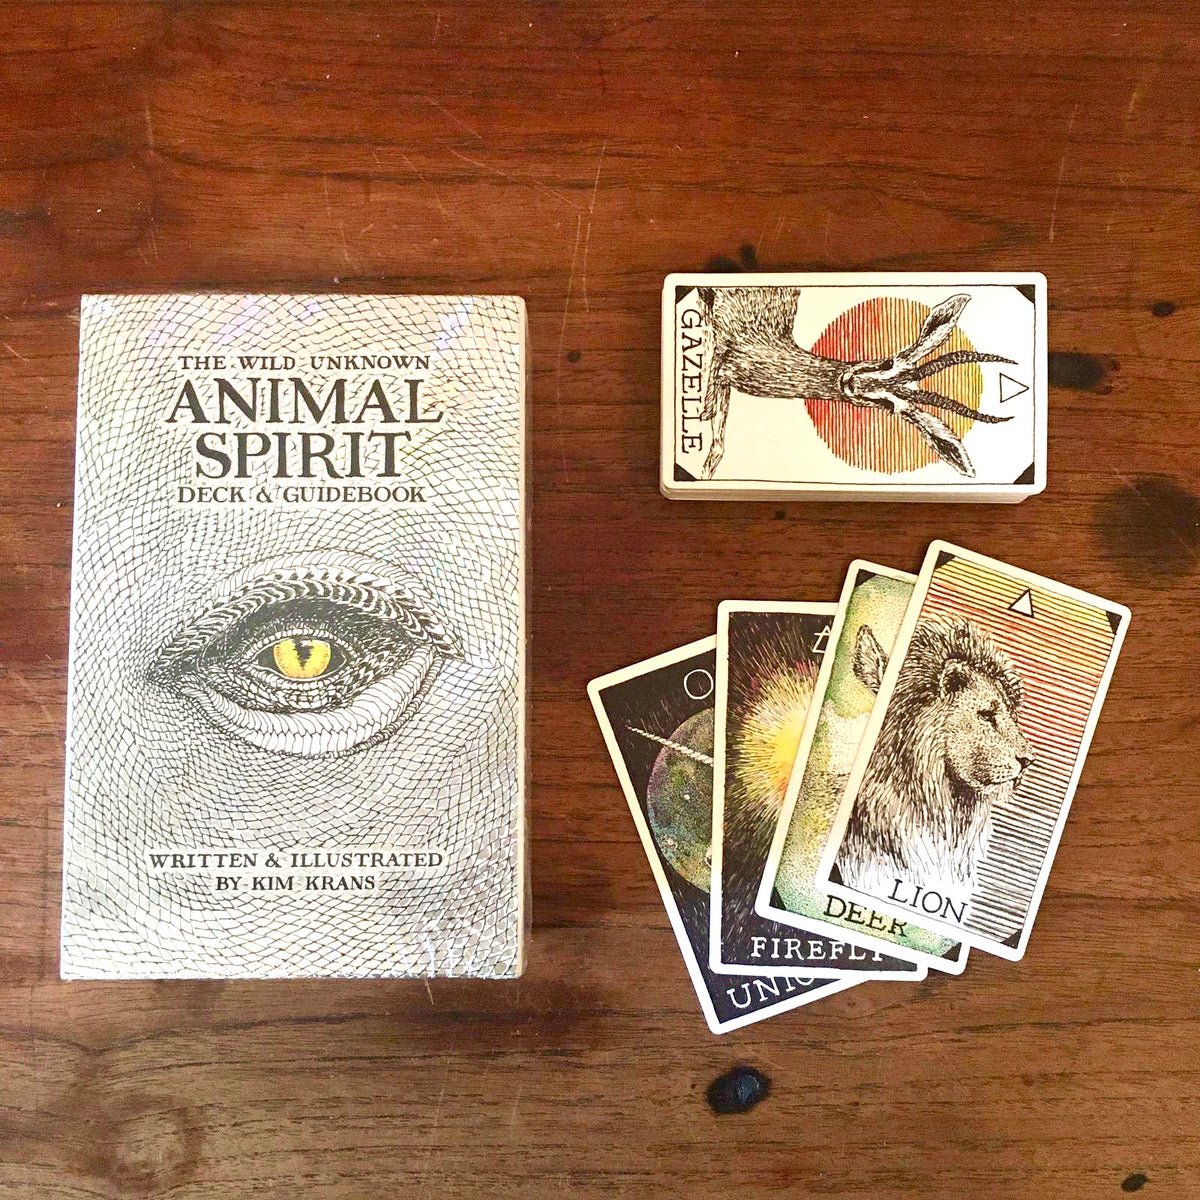 Wild Unknown Animal Spirit Deck & Guidebook